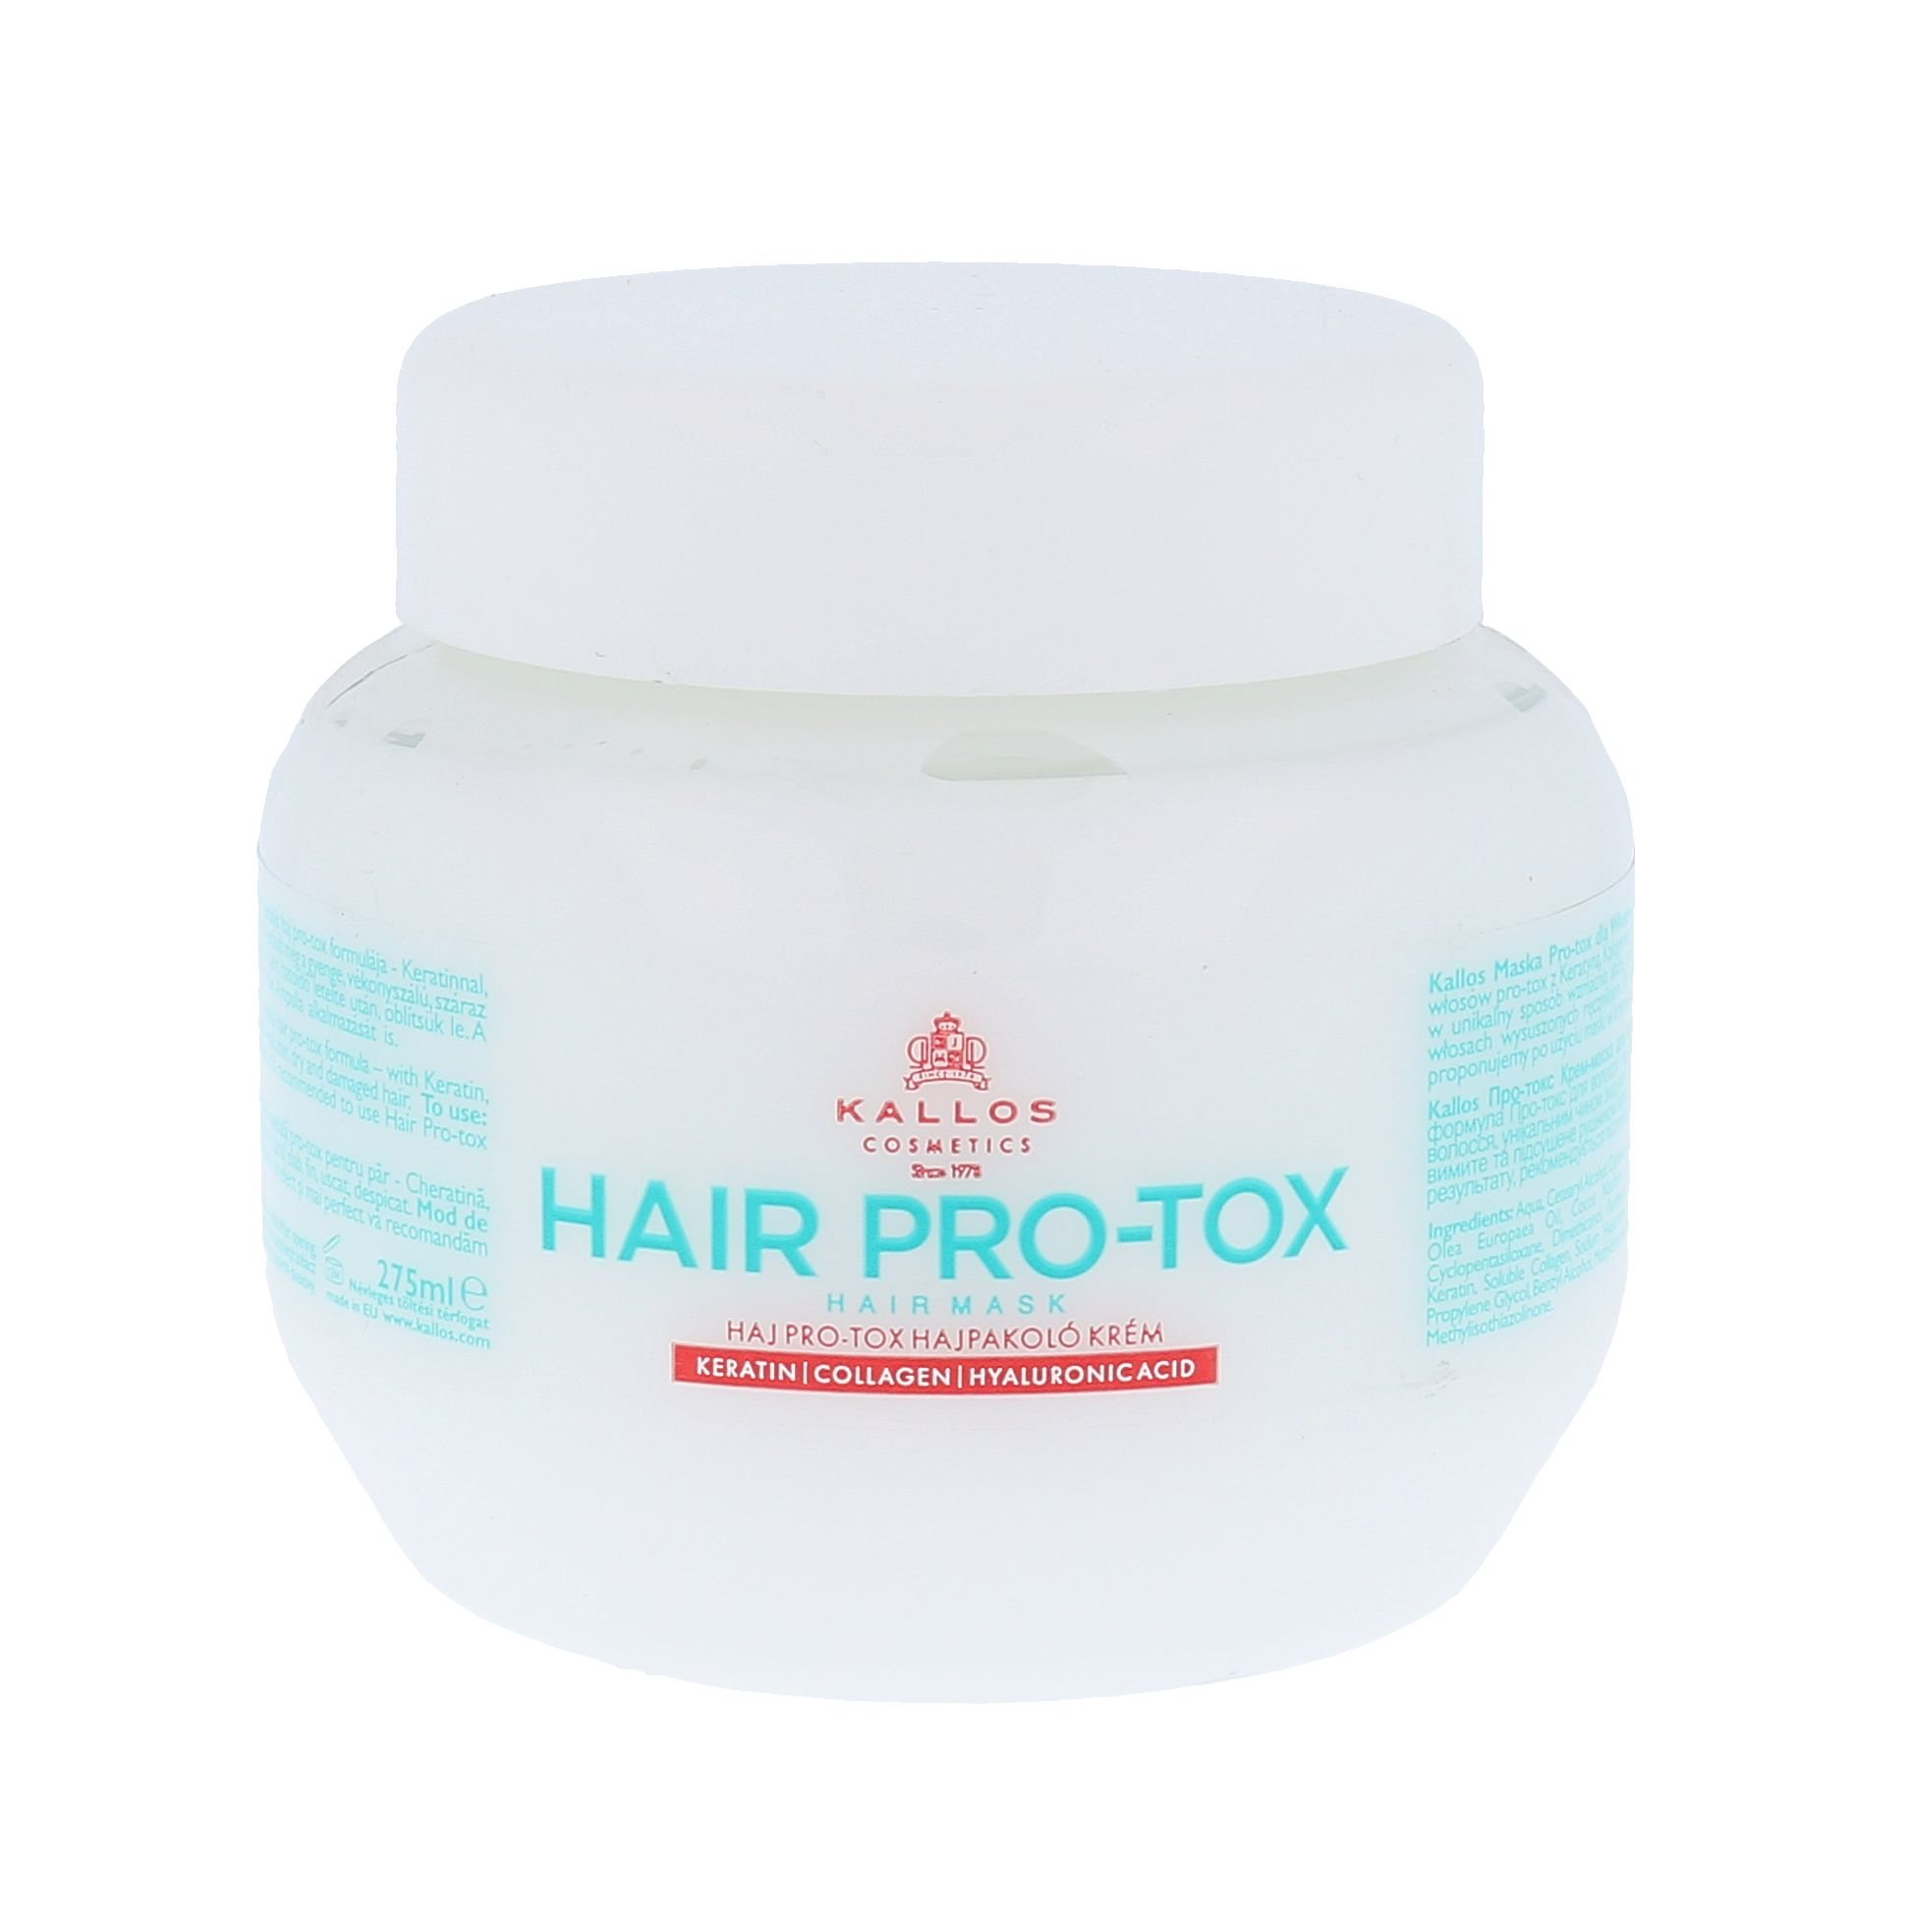 Kallos Cosmetics Hair Pro-Tox Cosmetic 275ml